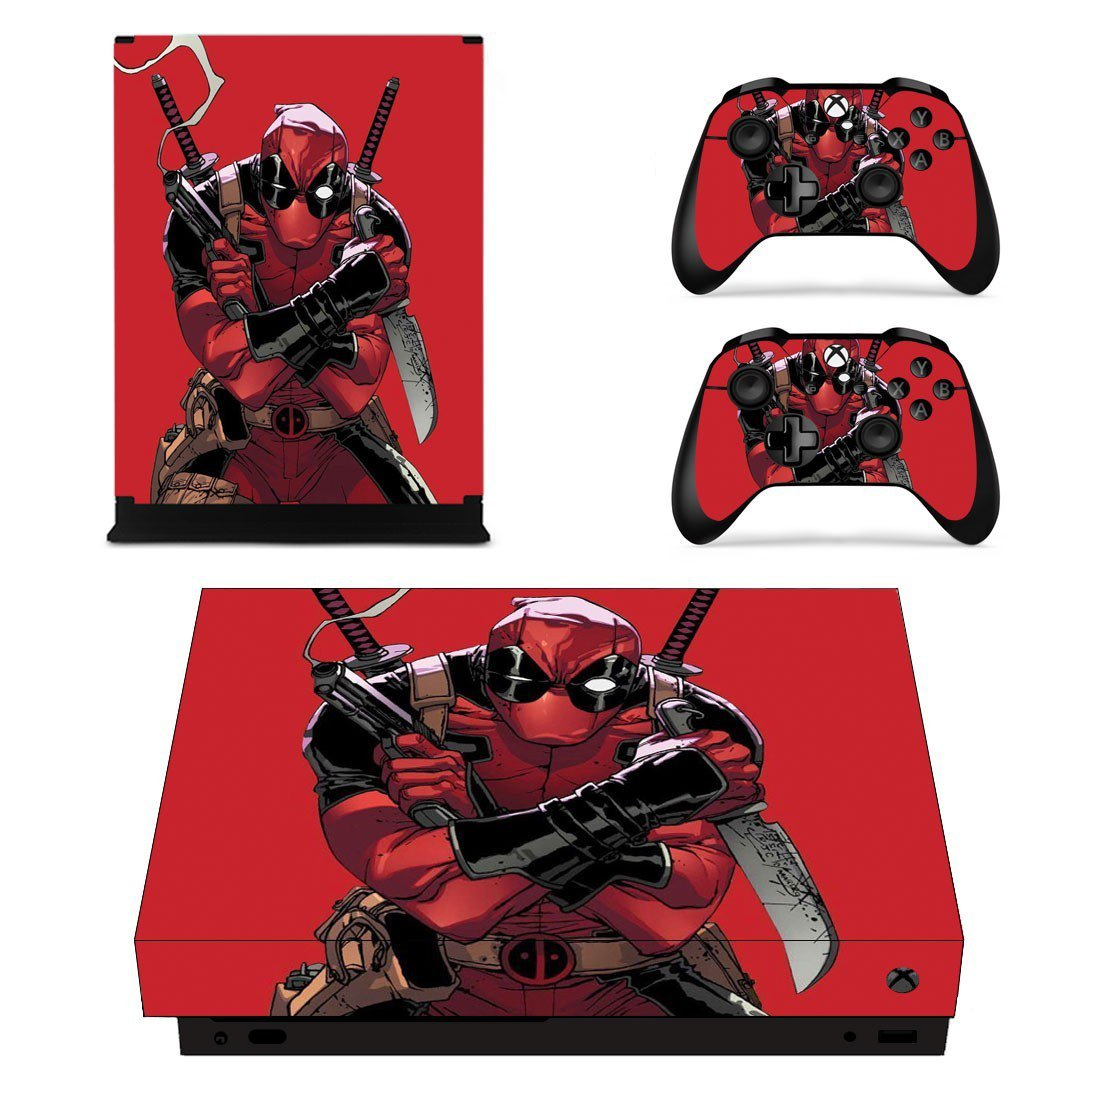 Deadpool 2 decal skin sticker for Xbox One X console and controllers